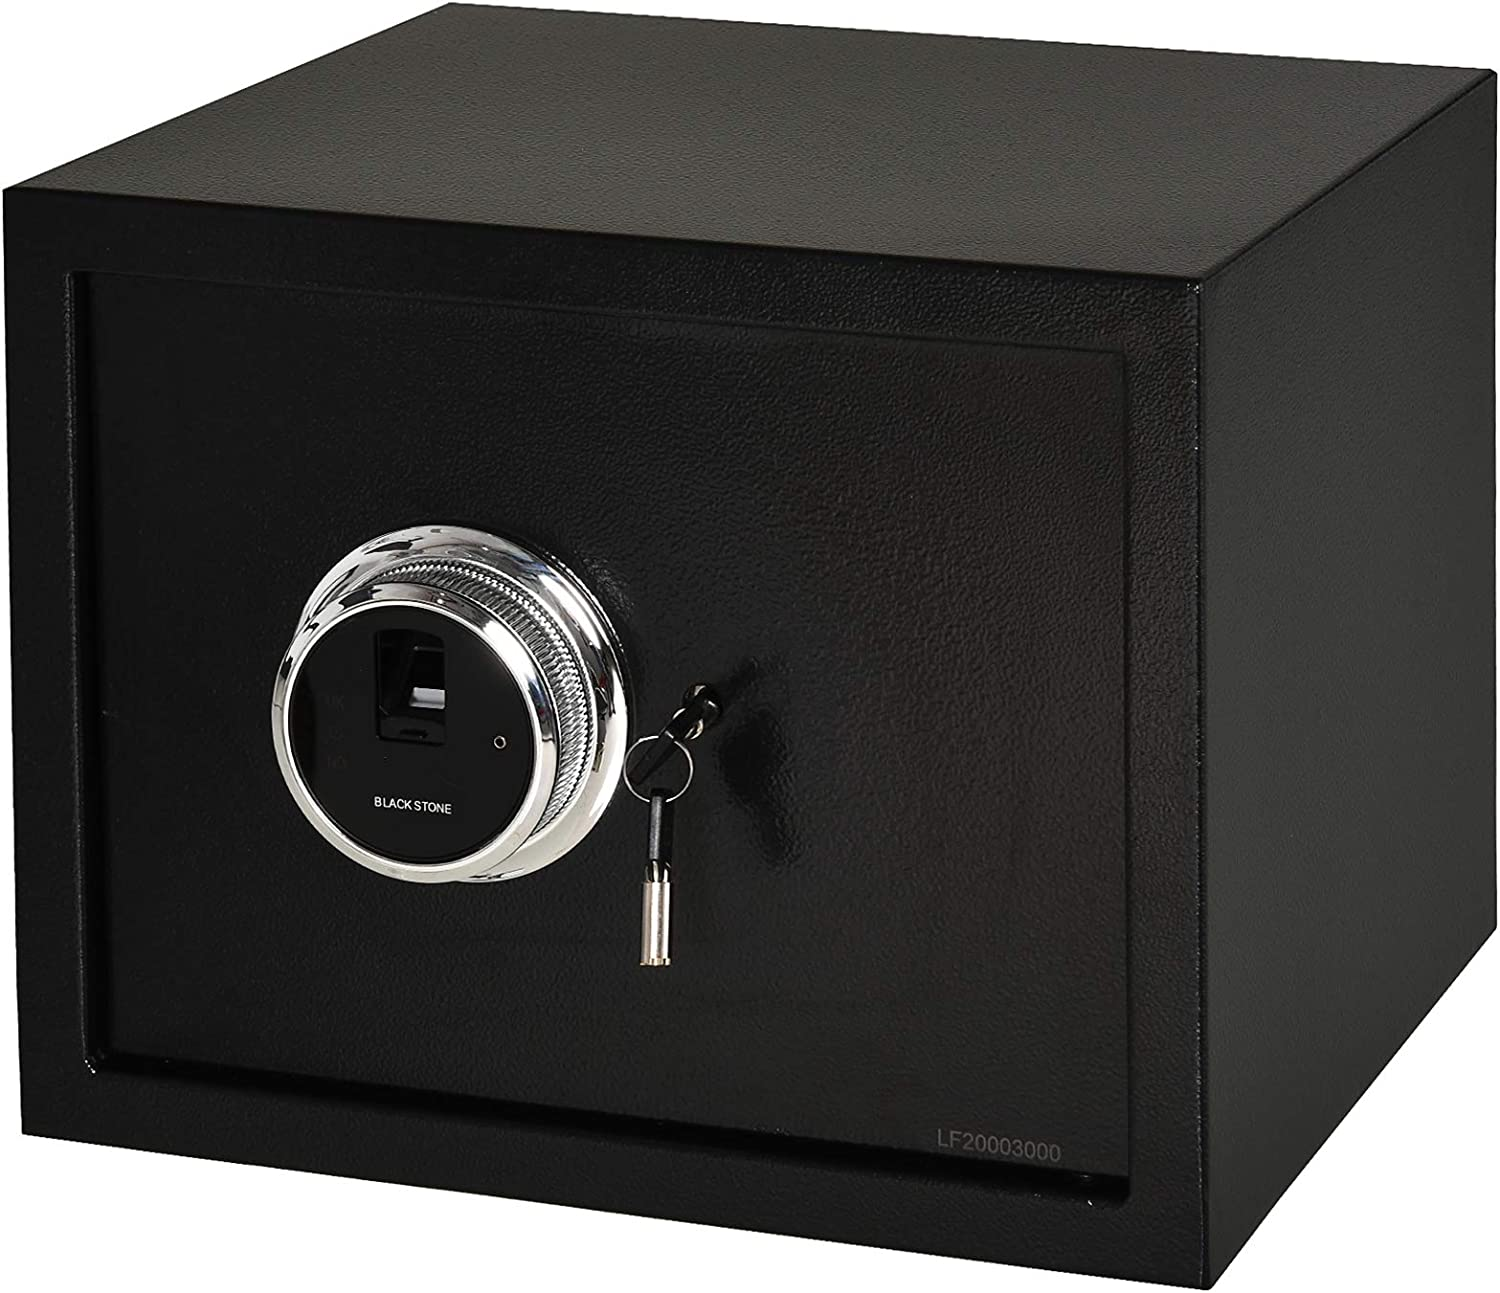 HOMCOM Steel Fingerprint 0.95Cubic Feet Safe Box for Home or Office with 2 Emergency Keys and Removable Shelf